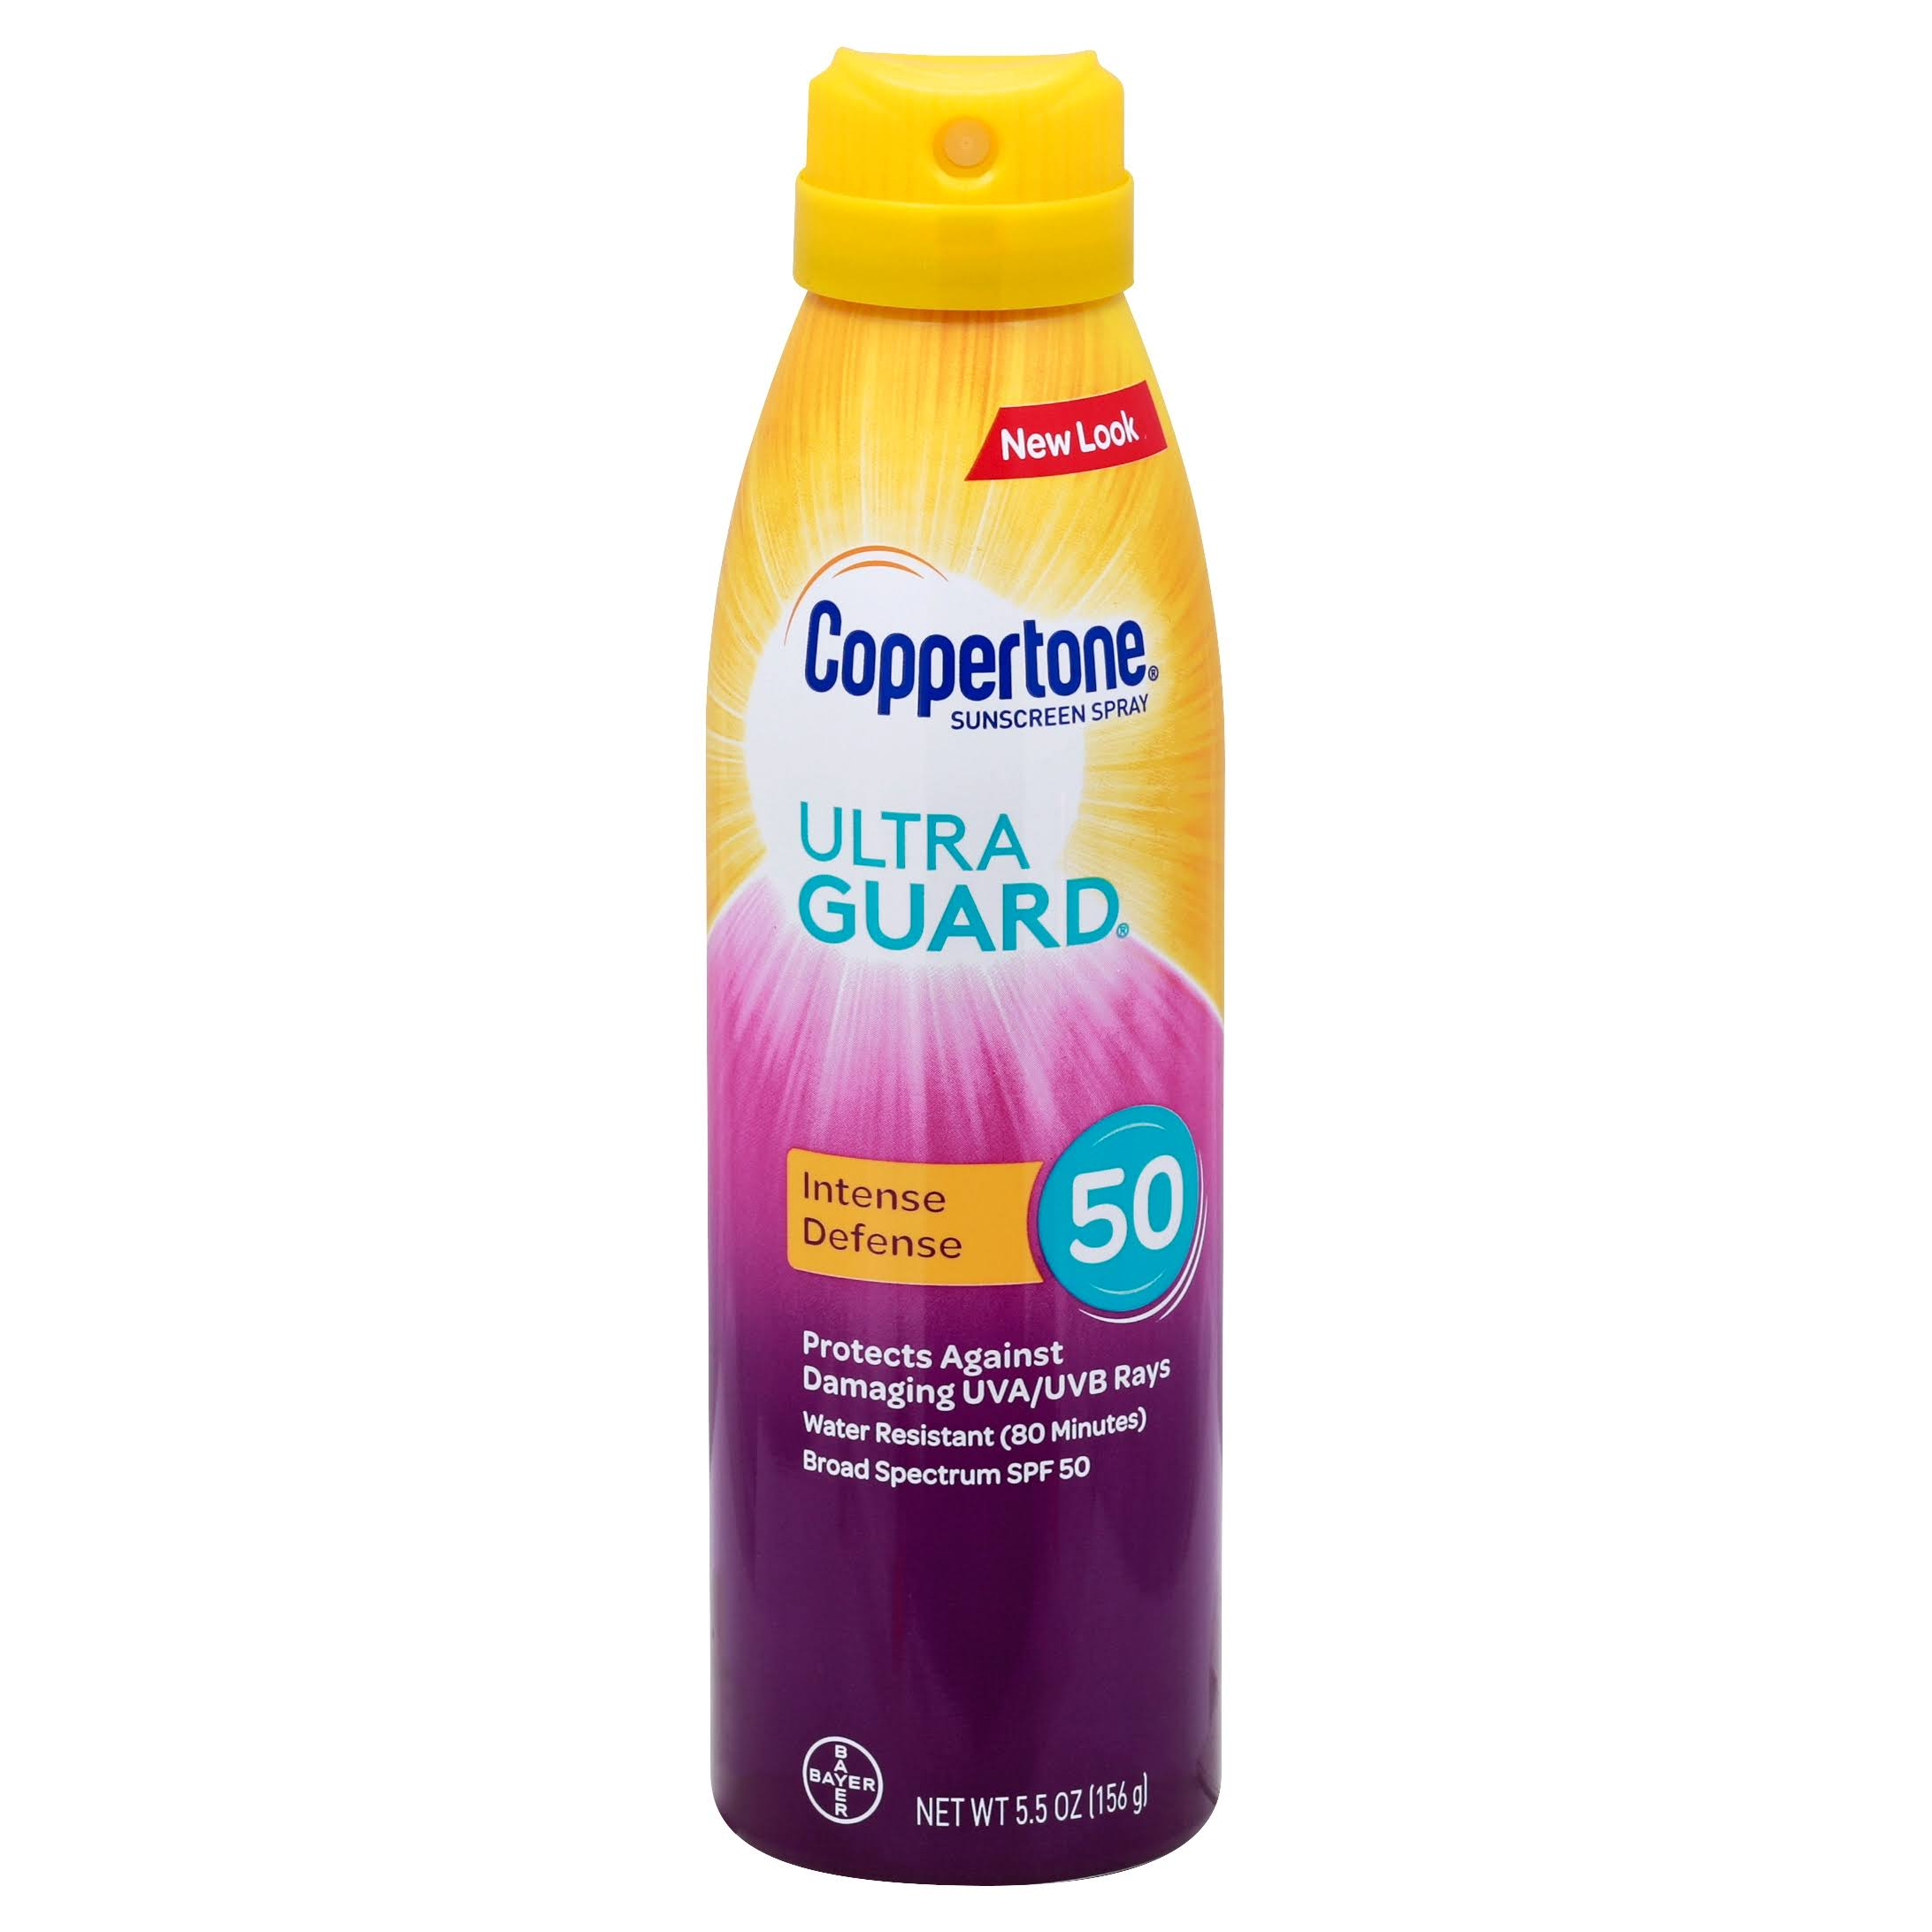 Coppertone Ultra Guard SPF 50 Sunscreen Spray - 5.5oz